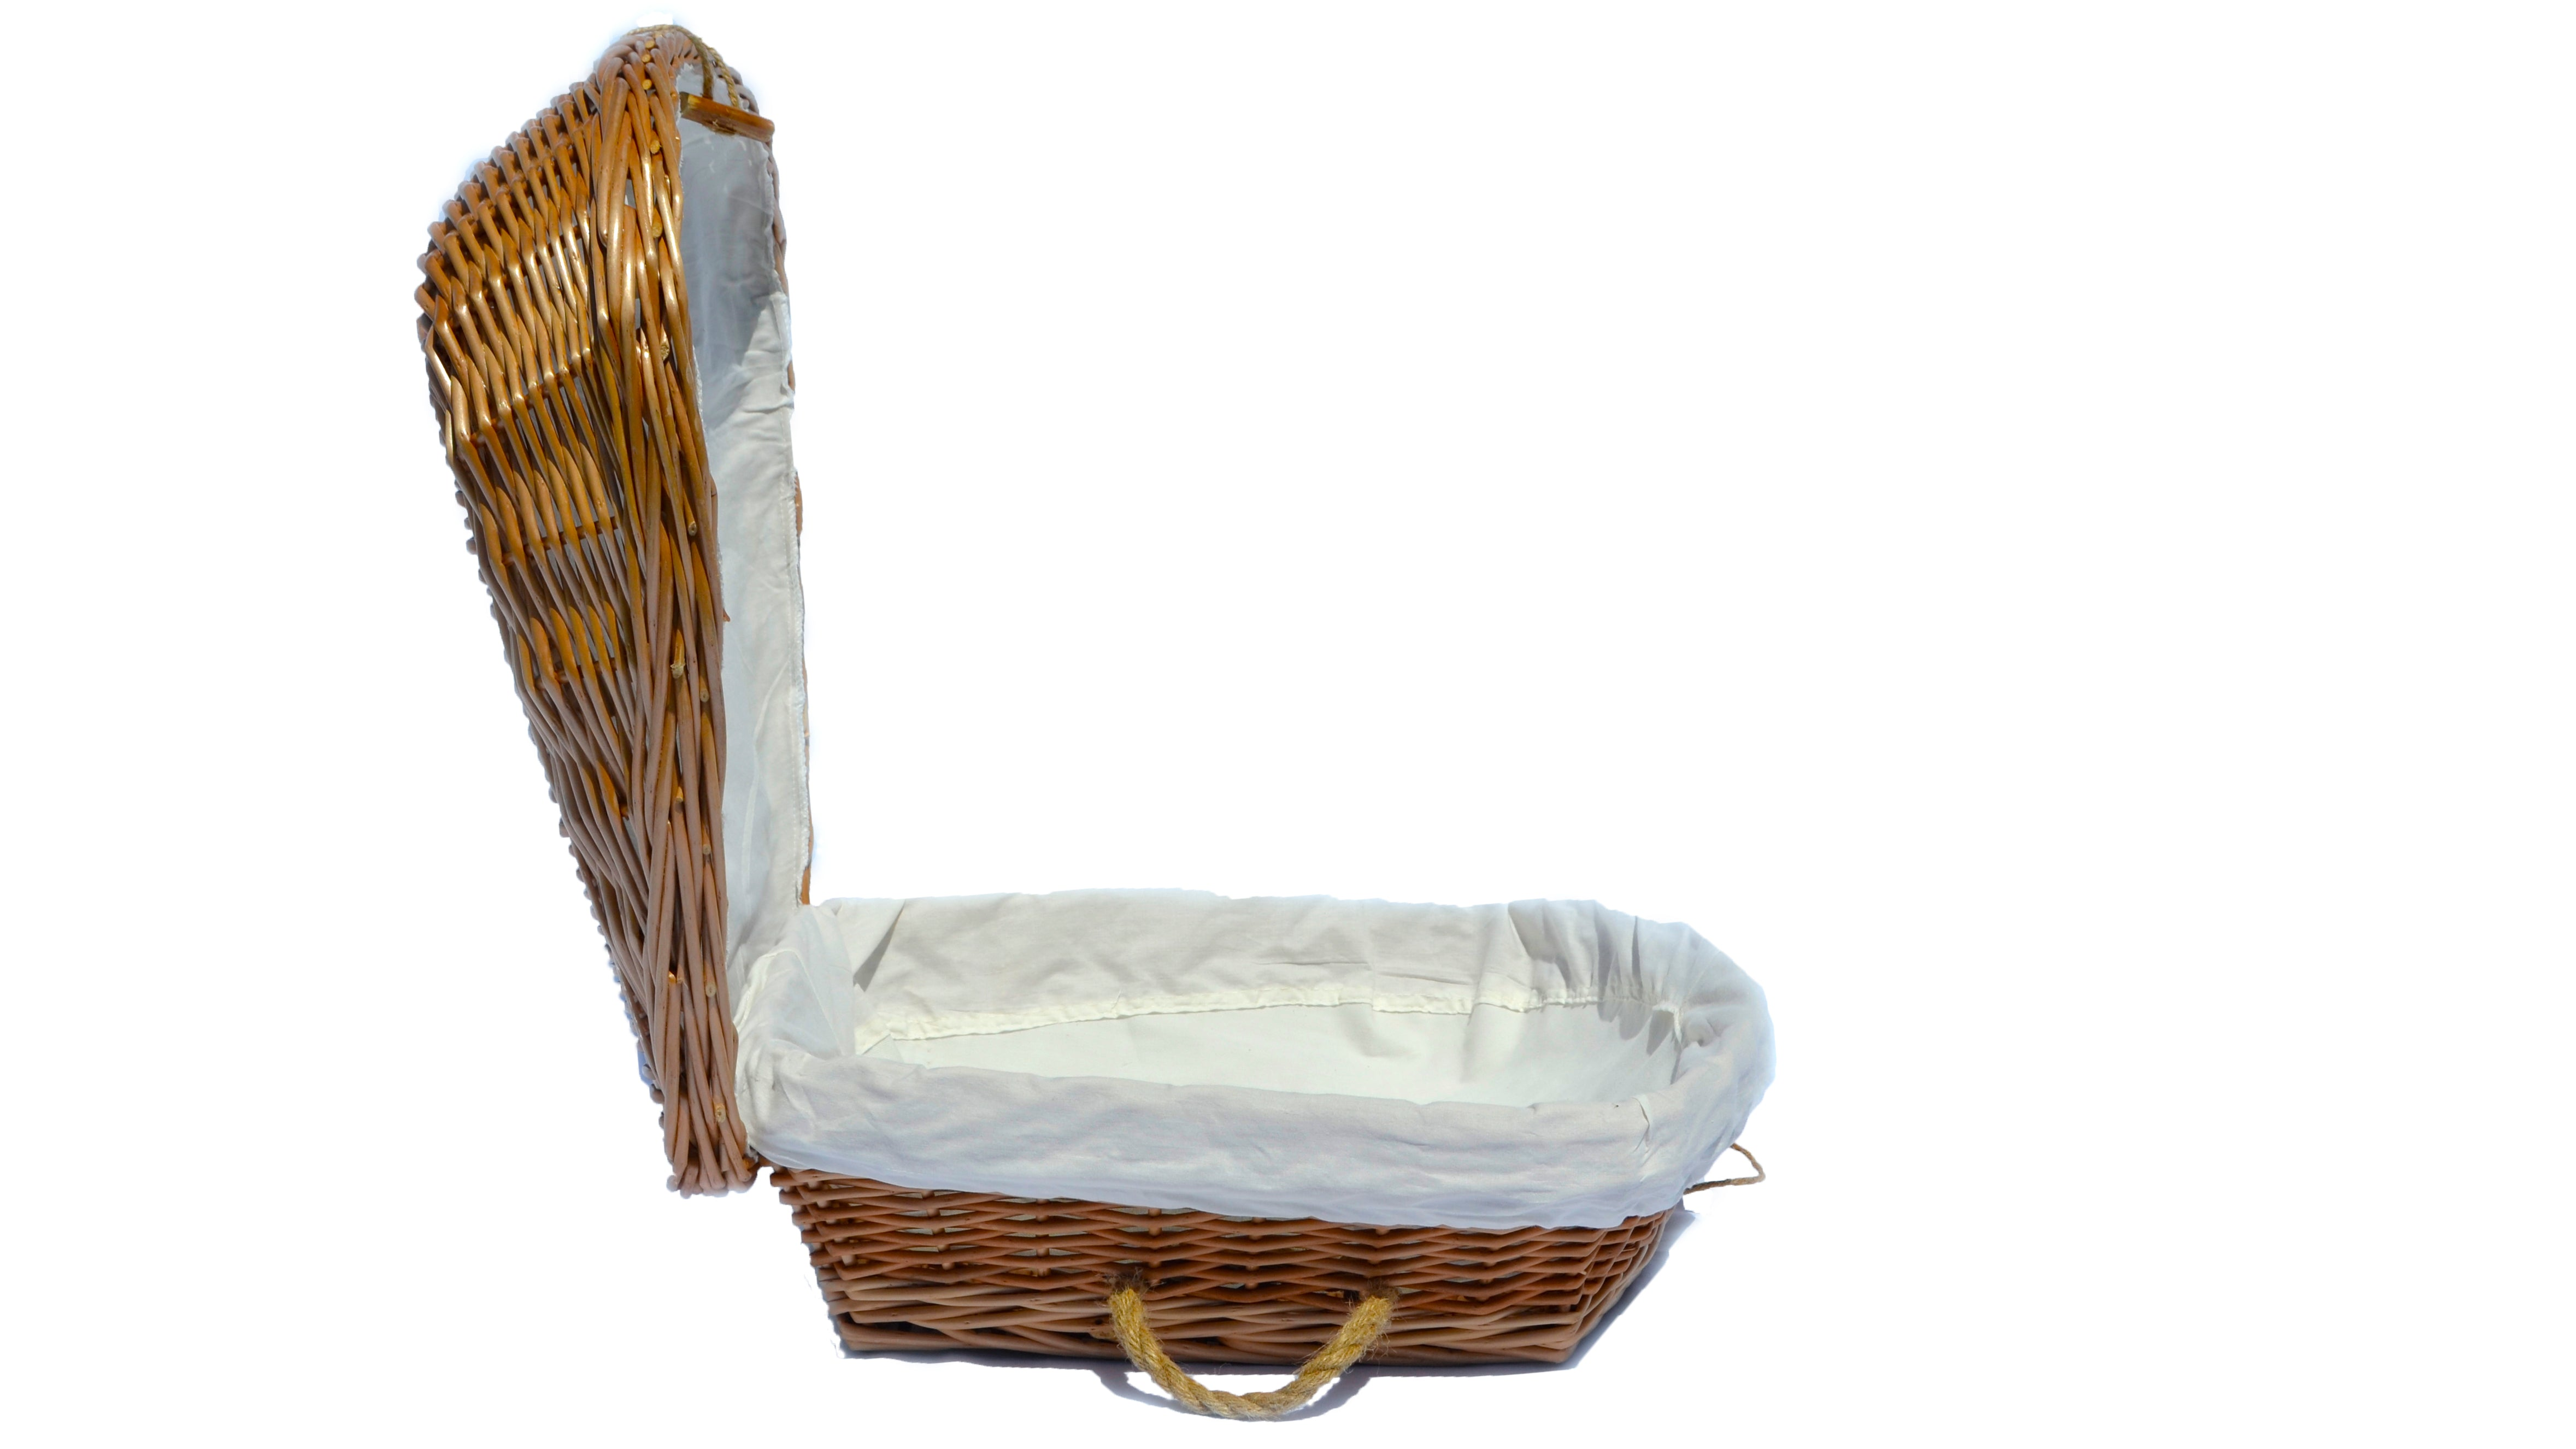 Hand Woven Pet Burial casket | Biodegradable and Eco Friendly Wicker Pet Coffin